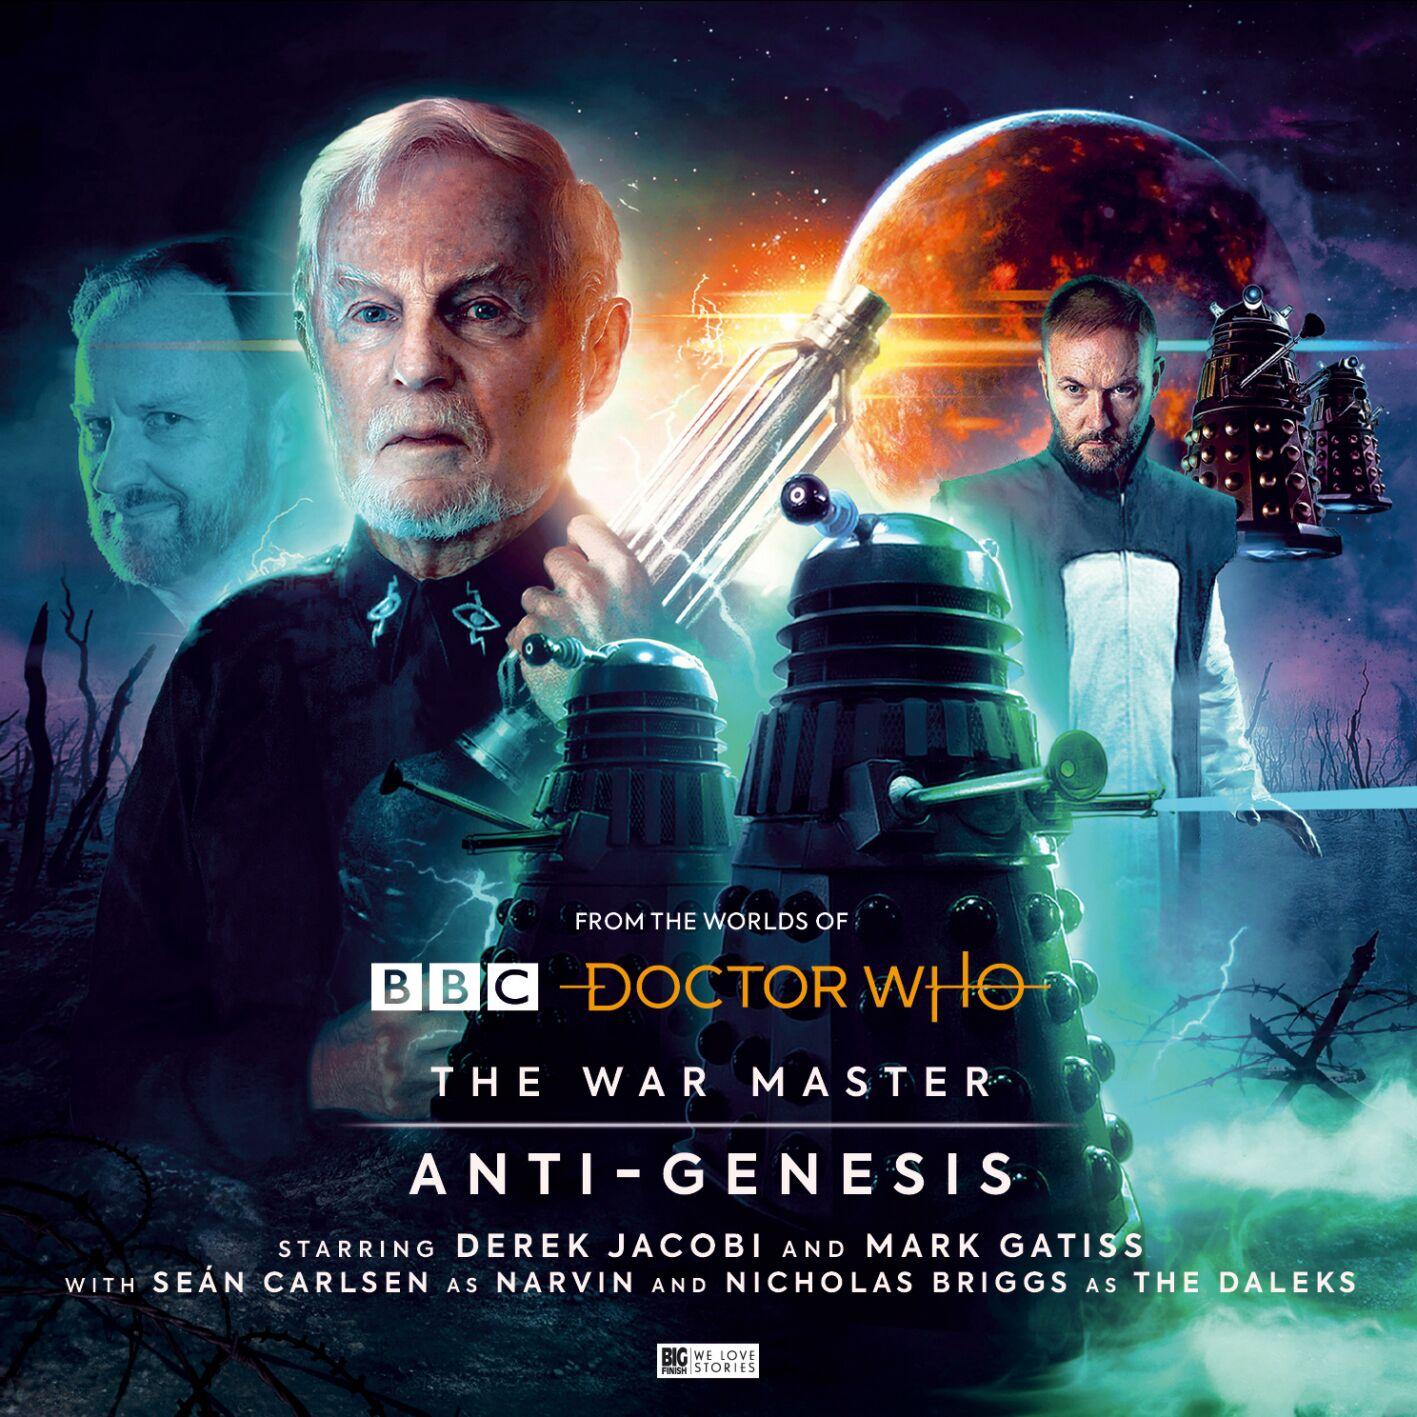 Doctor Who: Story details have been revealed for The War Master: Anti-Genesis!